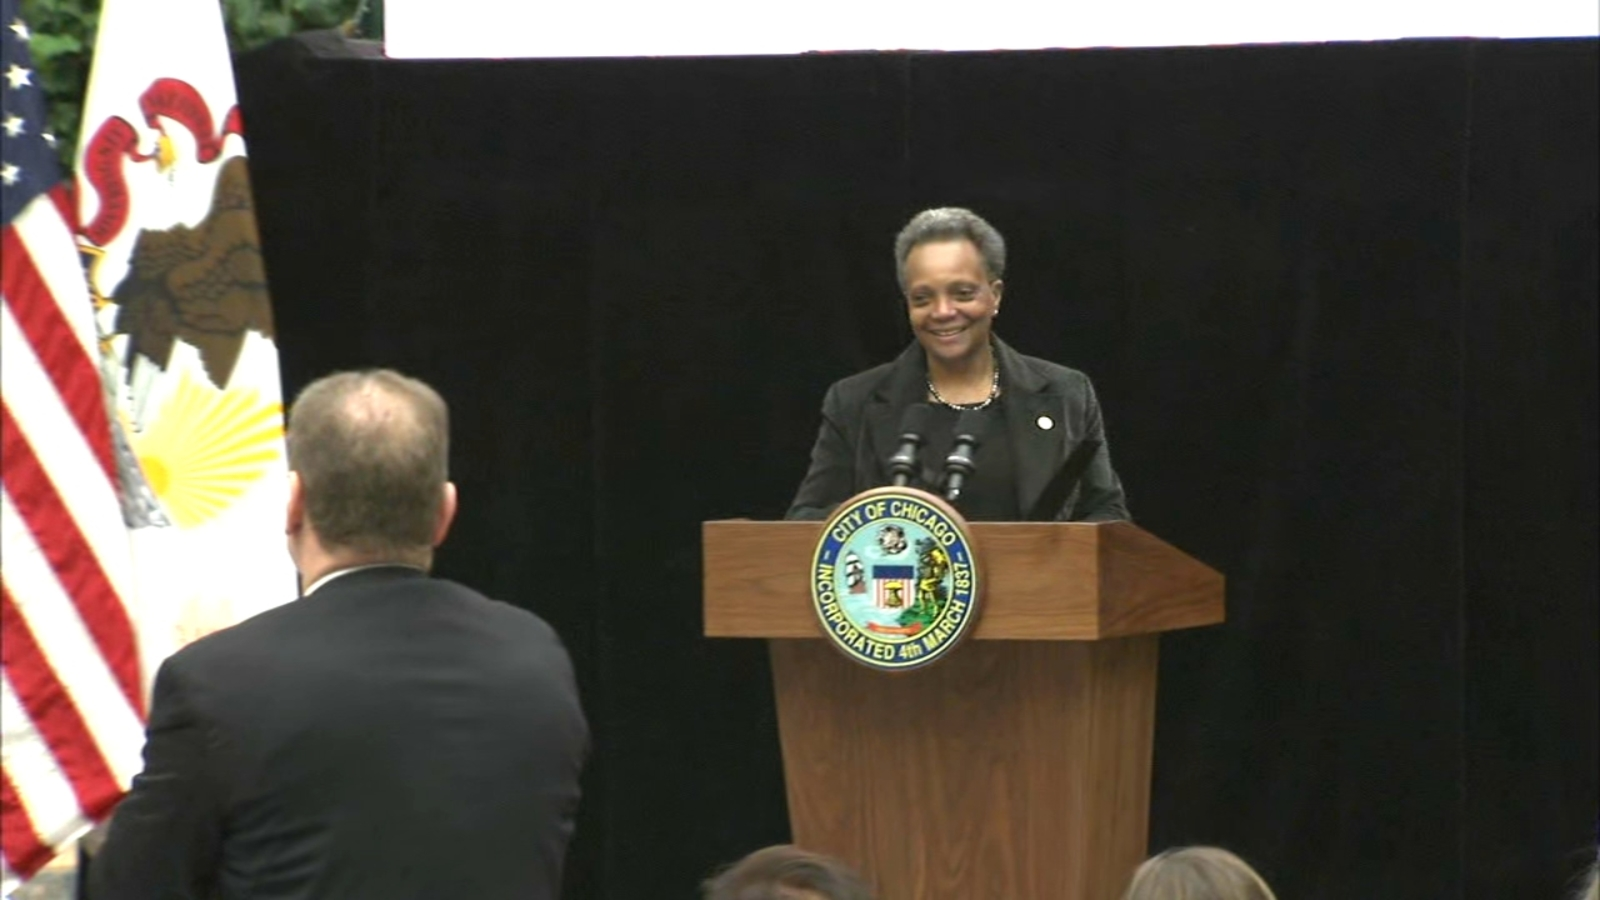 Mayor Lori Lightfoot encourages business leaders to get involved in 2020 census efforts